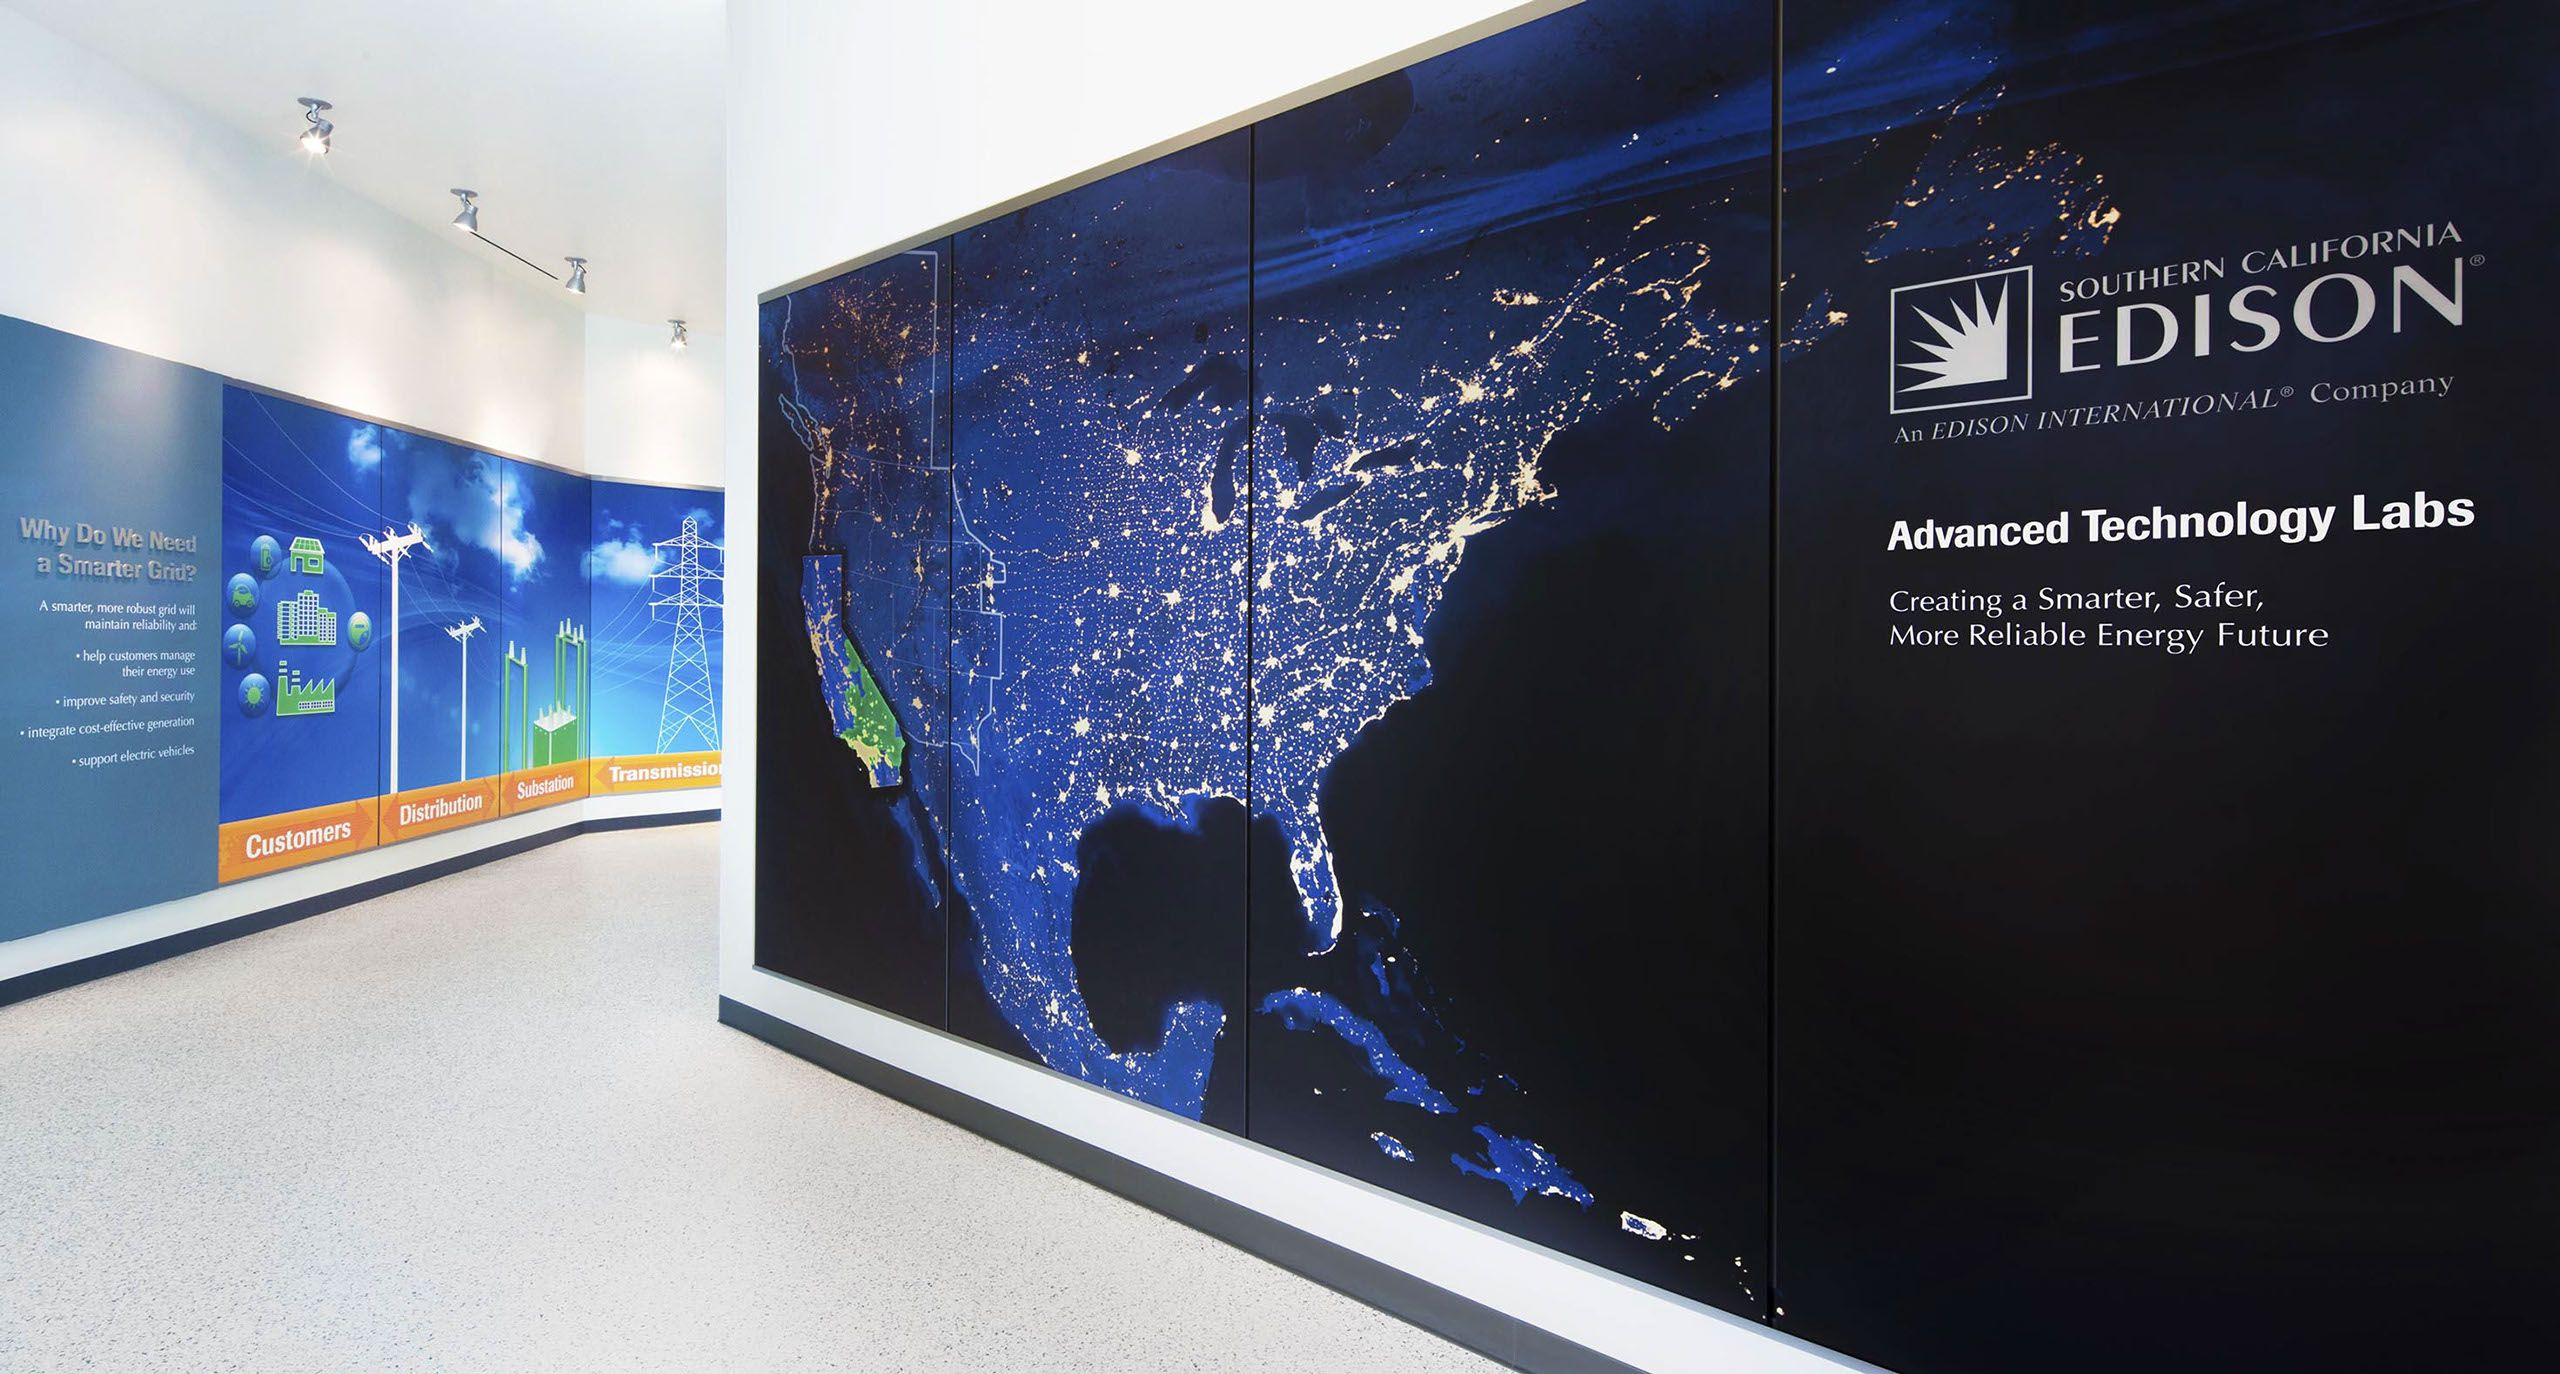 Technology & Briefing Centers